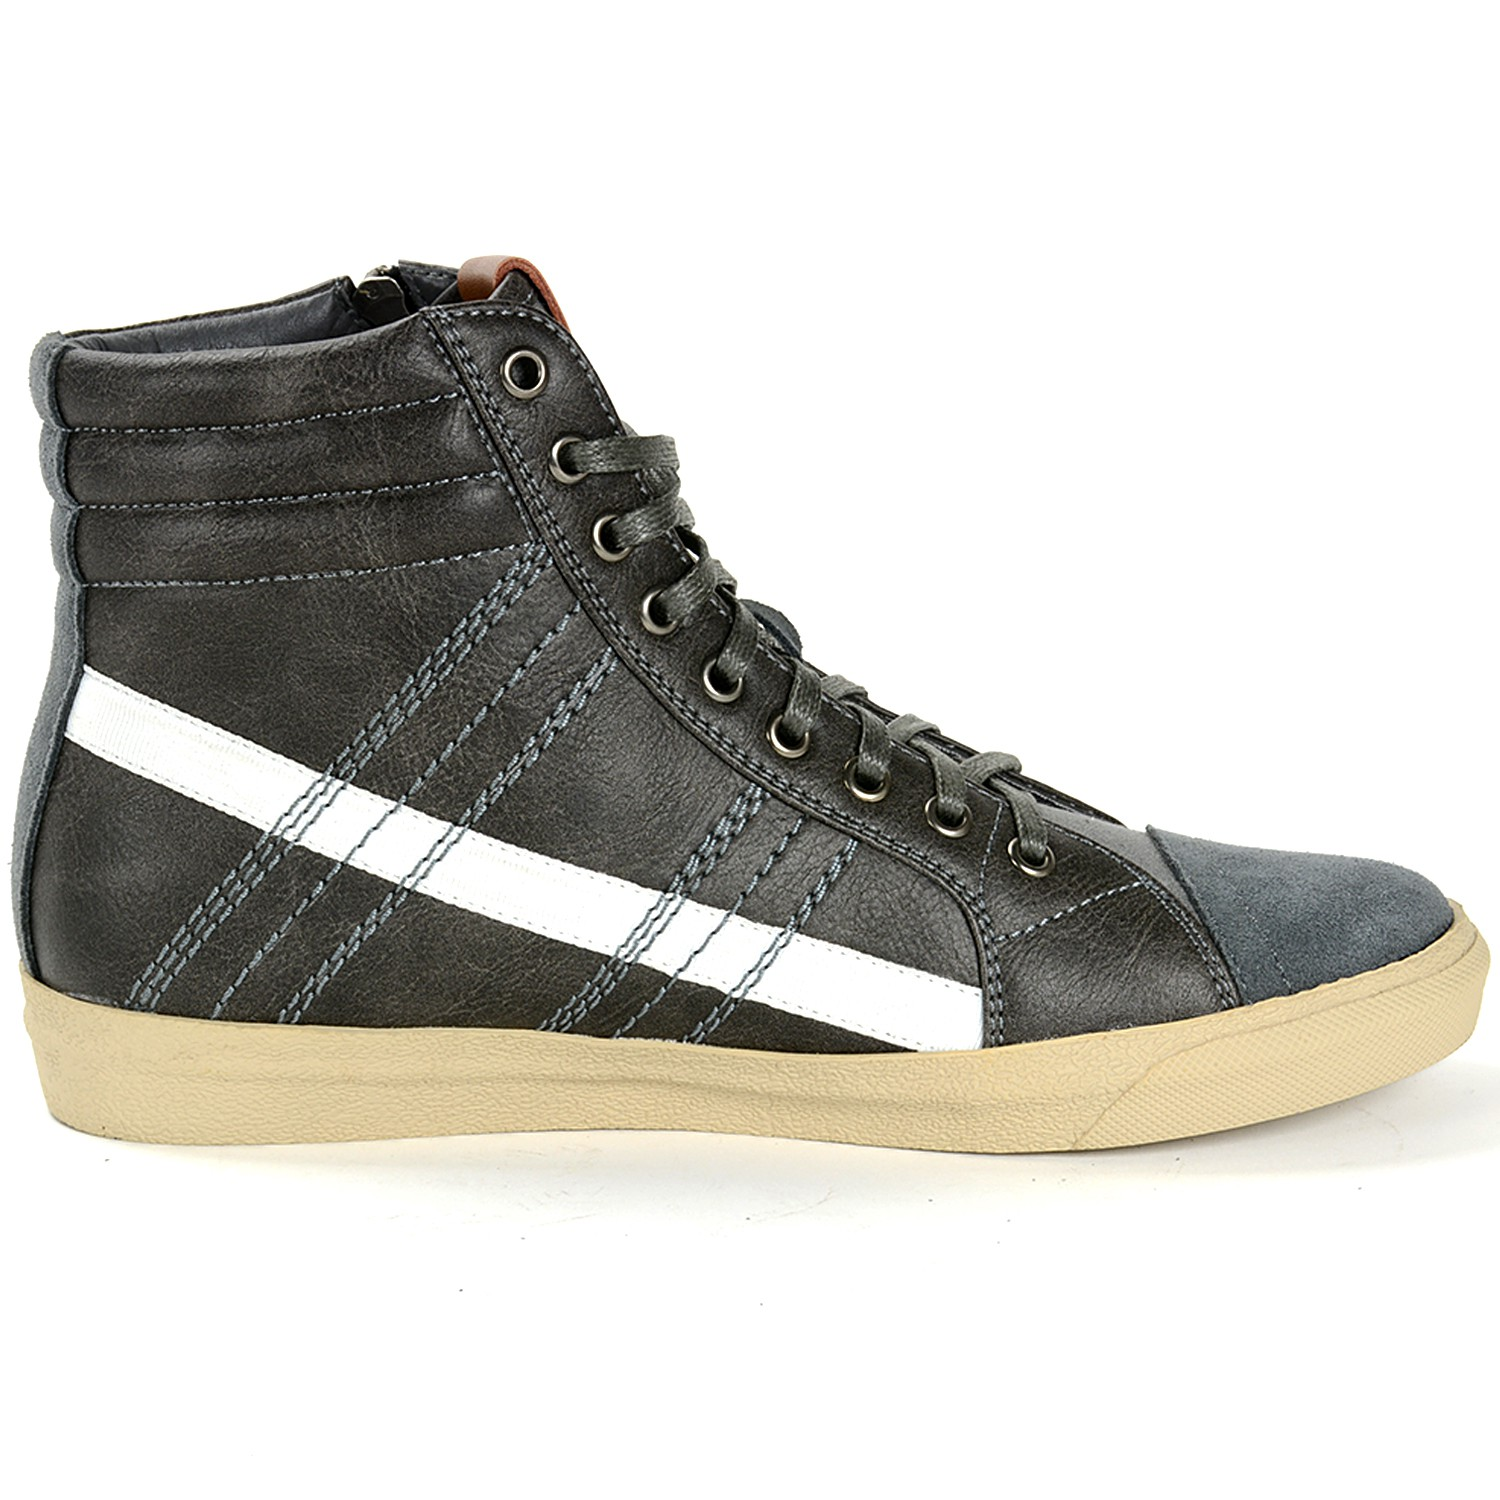 Alpine Swiss Reto Mens High Top Sneakers Lace Up Zip Ankle Boots Fashion Shoes Ebay